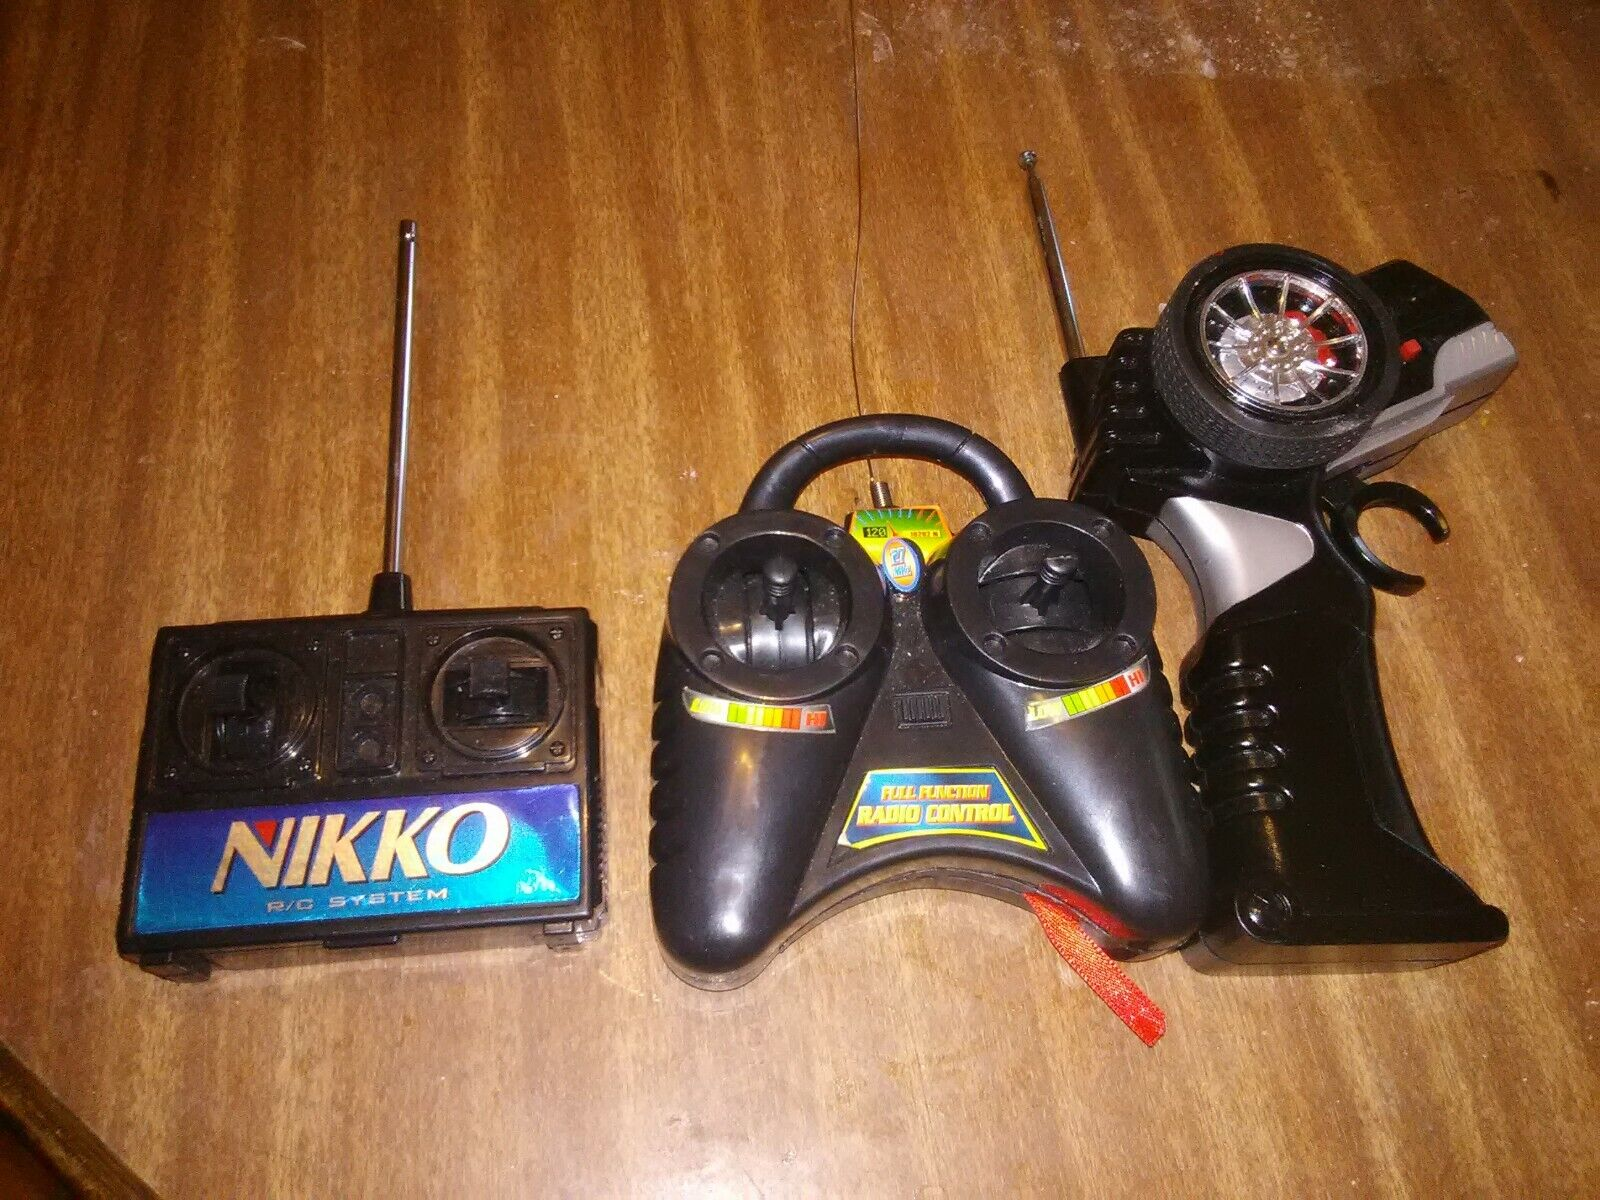 Vintage NIKKO Remote Control Toy Car Truck RC Vehicle Model Lot Of 3. - $19.99